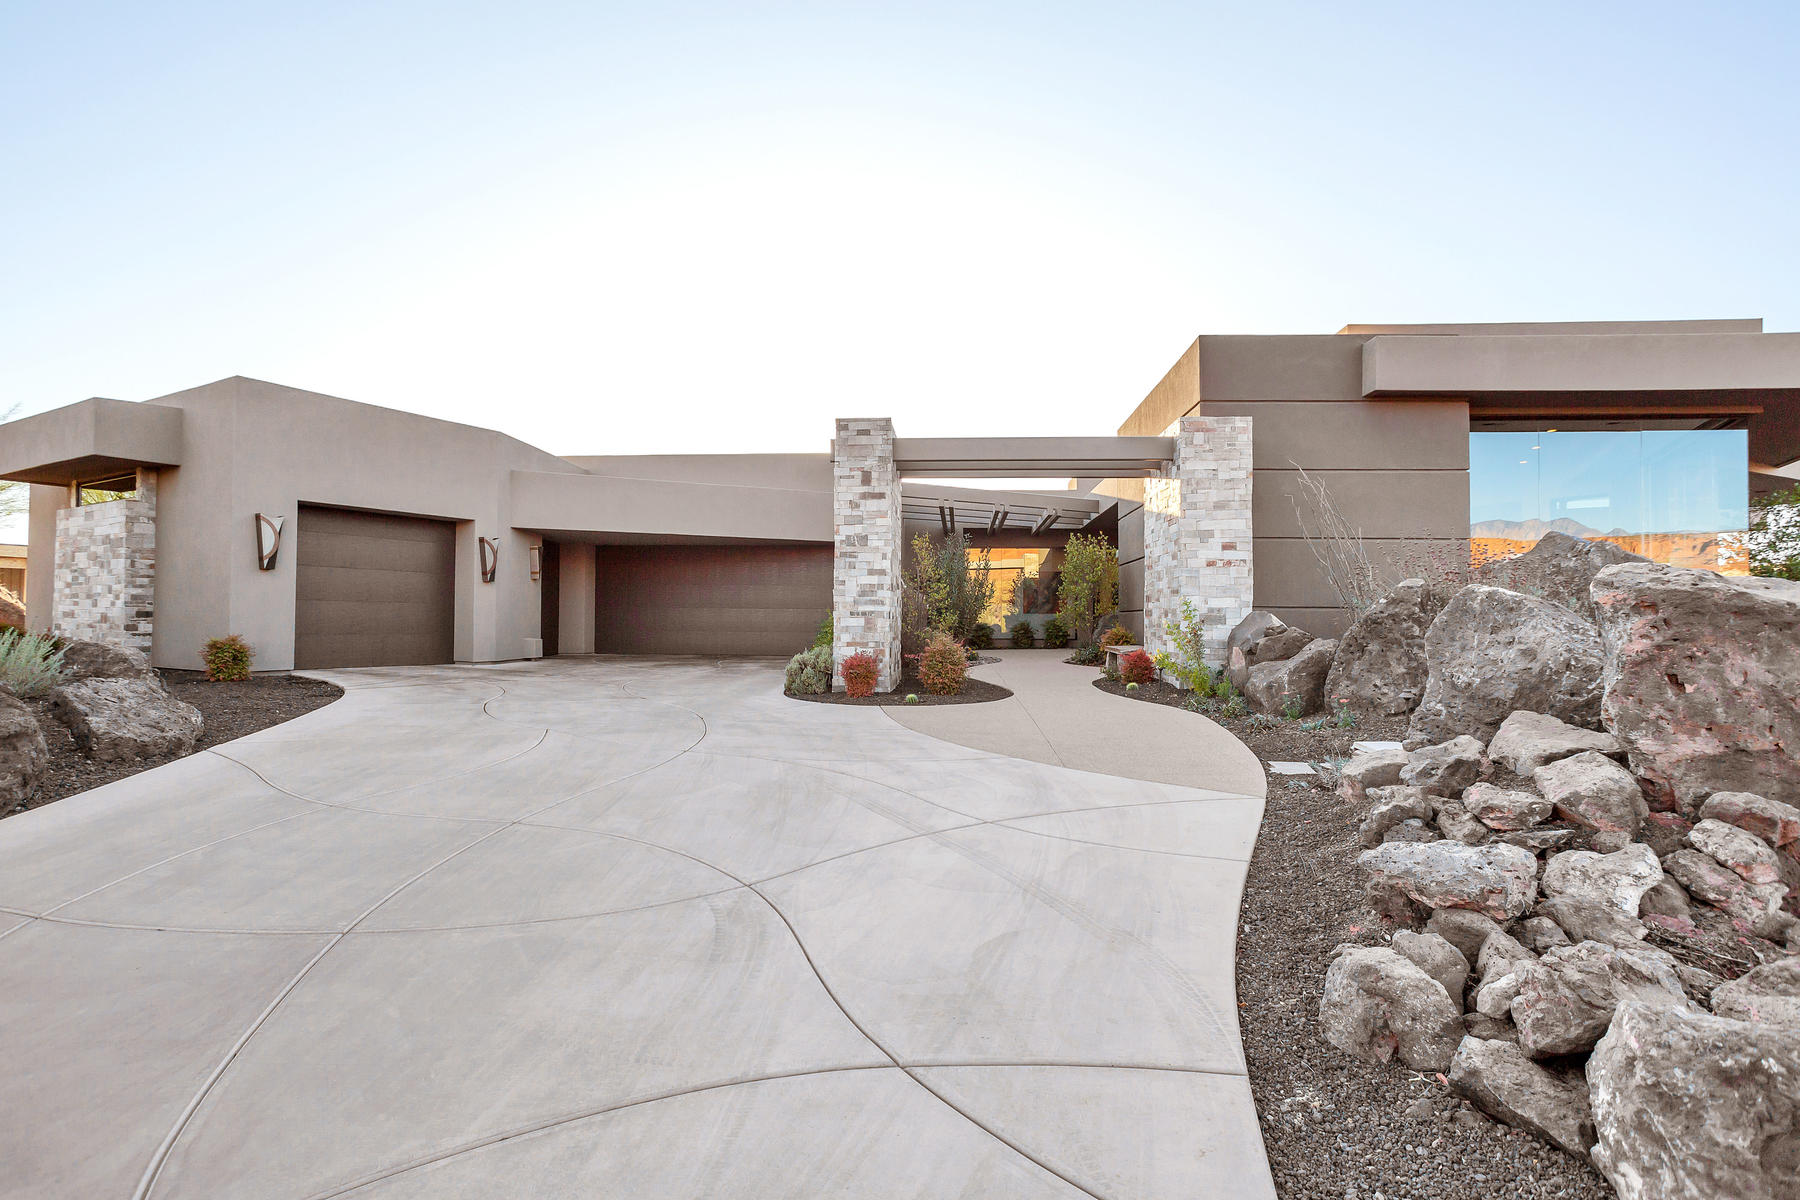 Single Family Homes for Sale at Contemporary Desert Retreat at Entrada 2705 N Chaco Trail, St. George, Utah 84770 United States